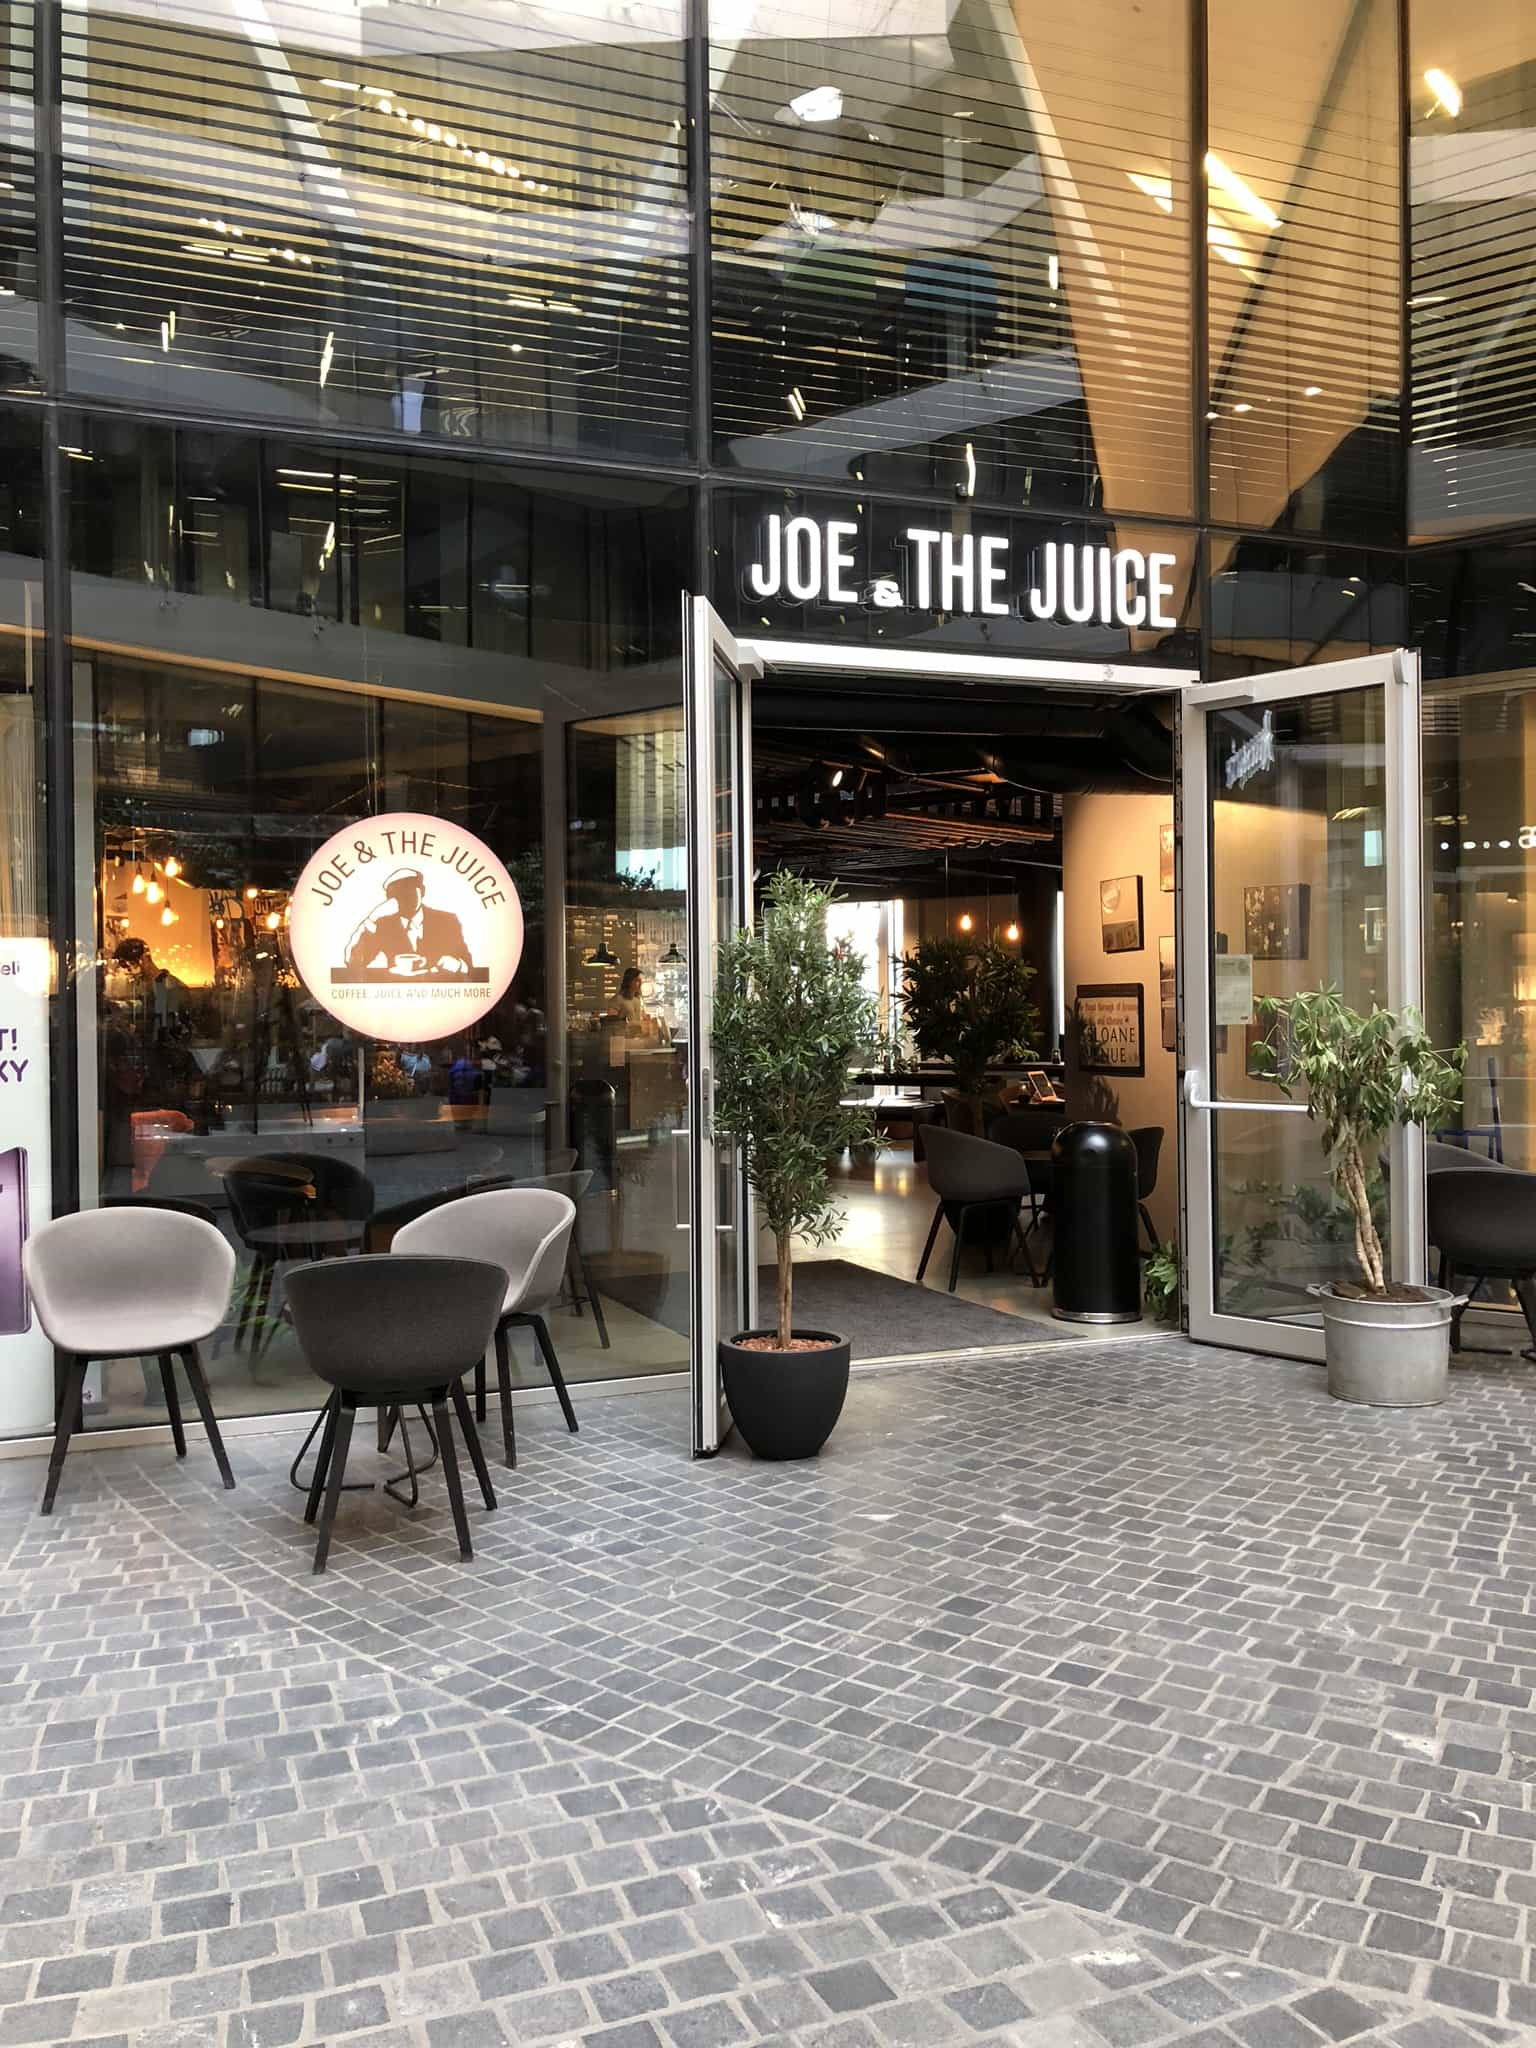 Oslo - Aker Brygge - Joe & the Juice - Entrance